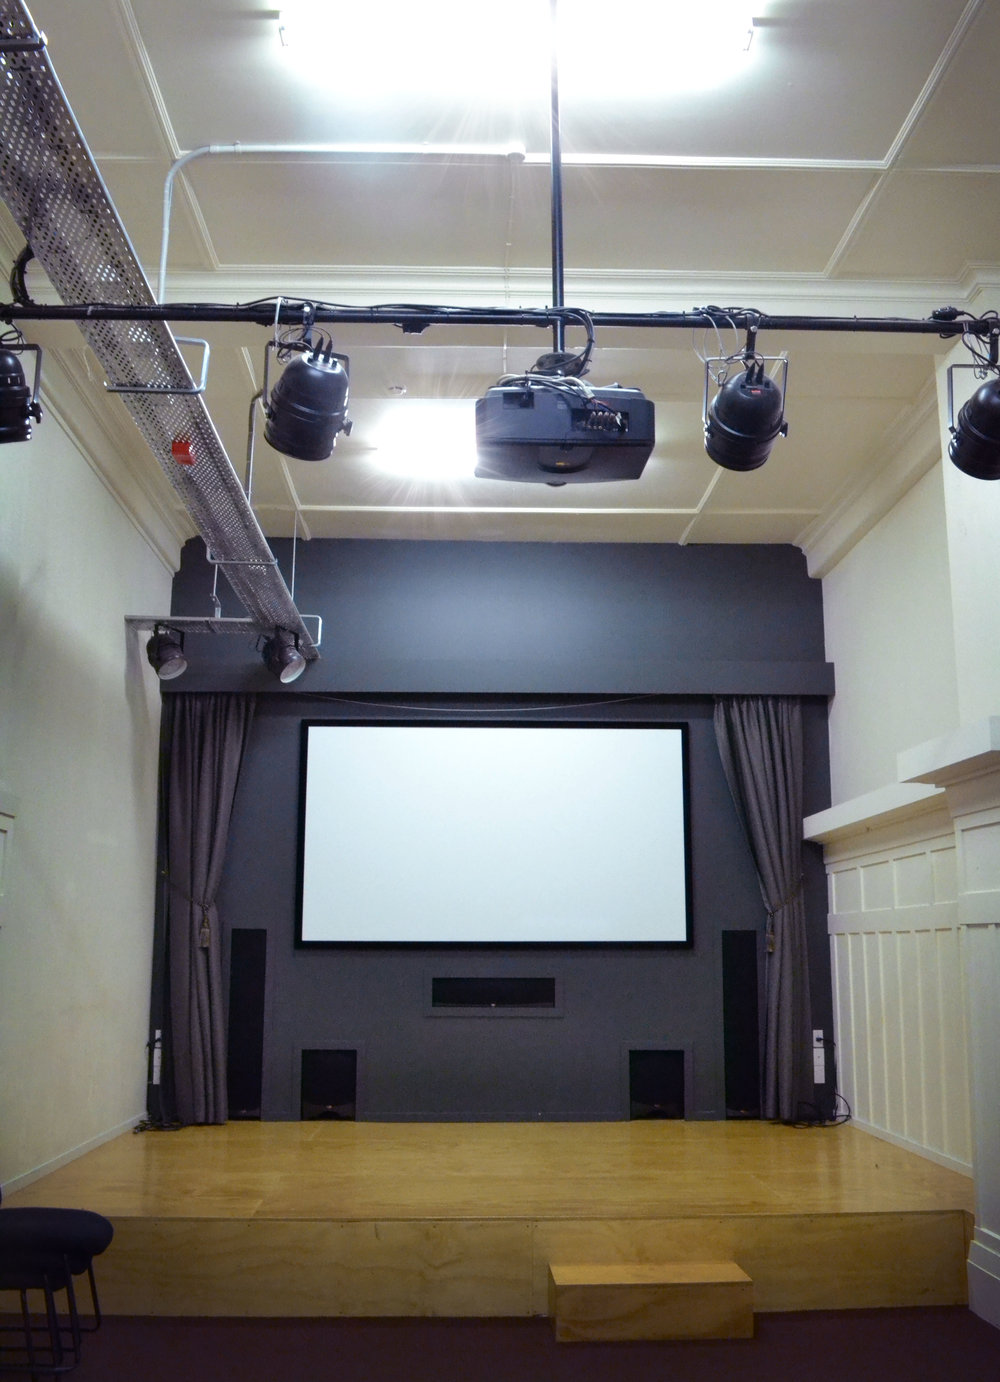 The FX Theatre seats up to 36 people and has an AV system well suited to screening movies or for performances such as readings, solo-shows and public talks.